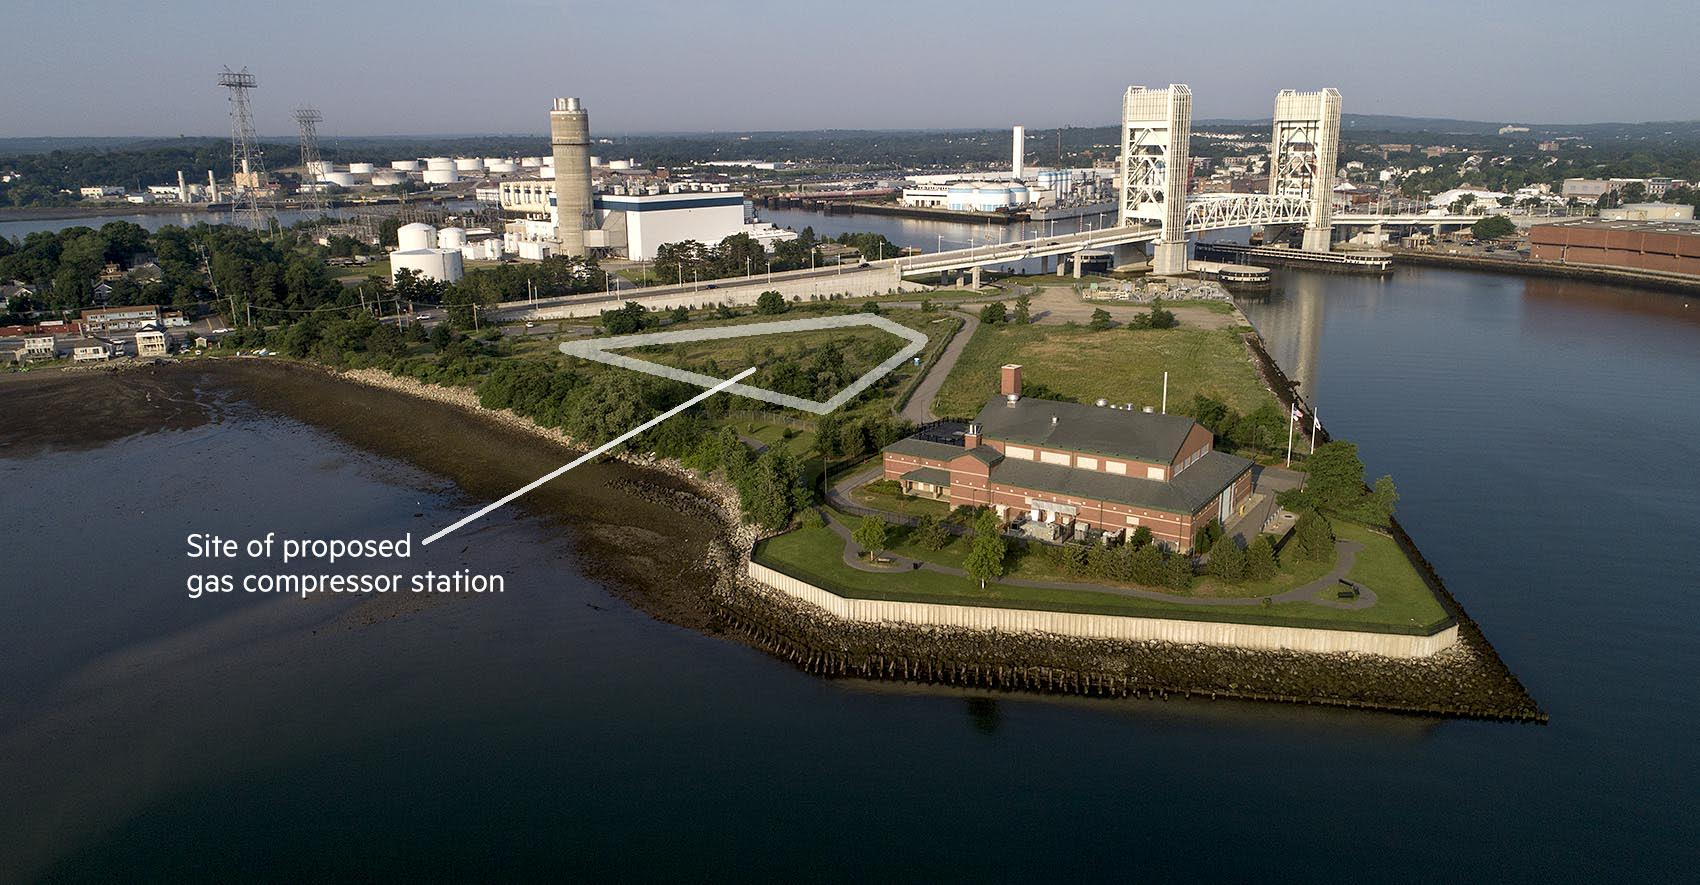 The proposed Weymouth compressor station would be constructed between the MWRA Braintree-Weymouth Pump Station, in the foreground, and Bridge Street, the road that crosses the Fore River Bridge. (Robin Lubbock/WBUR)